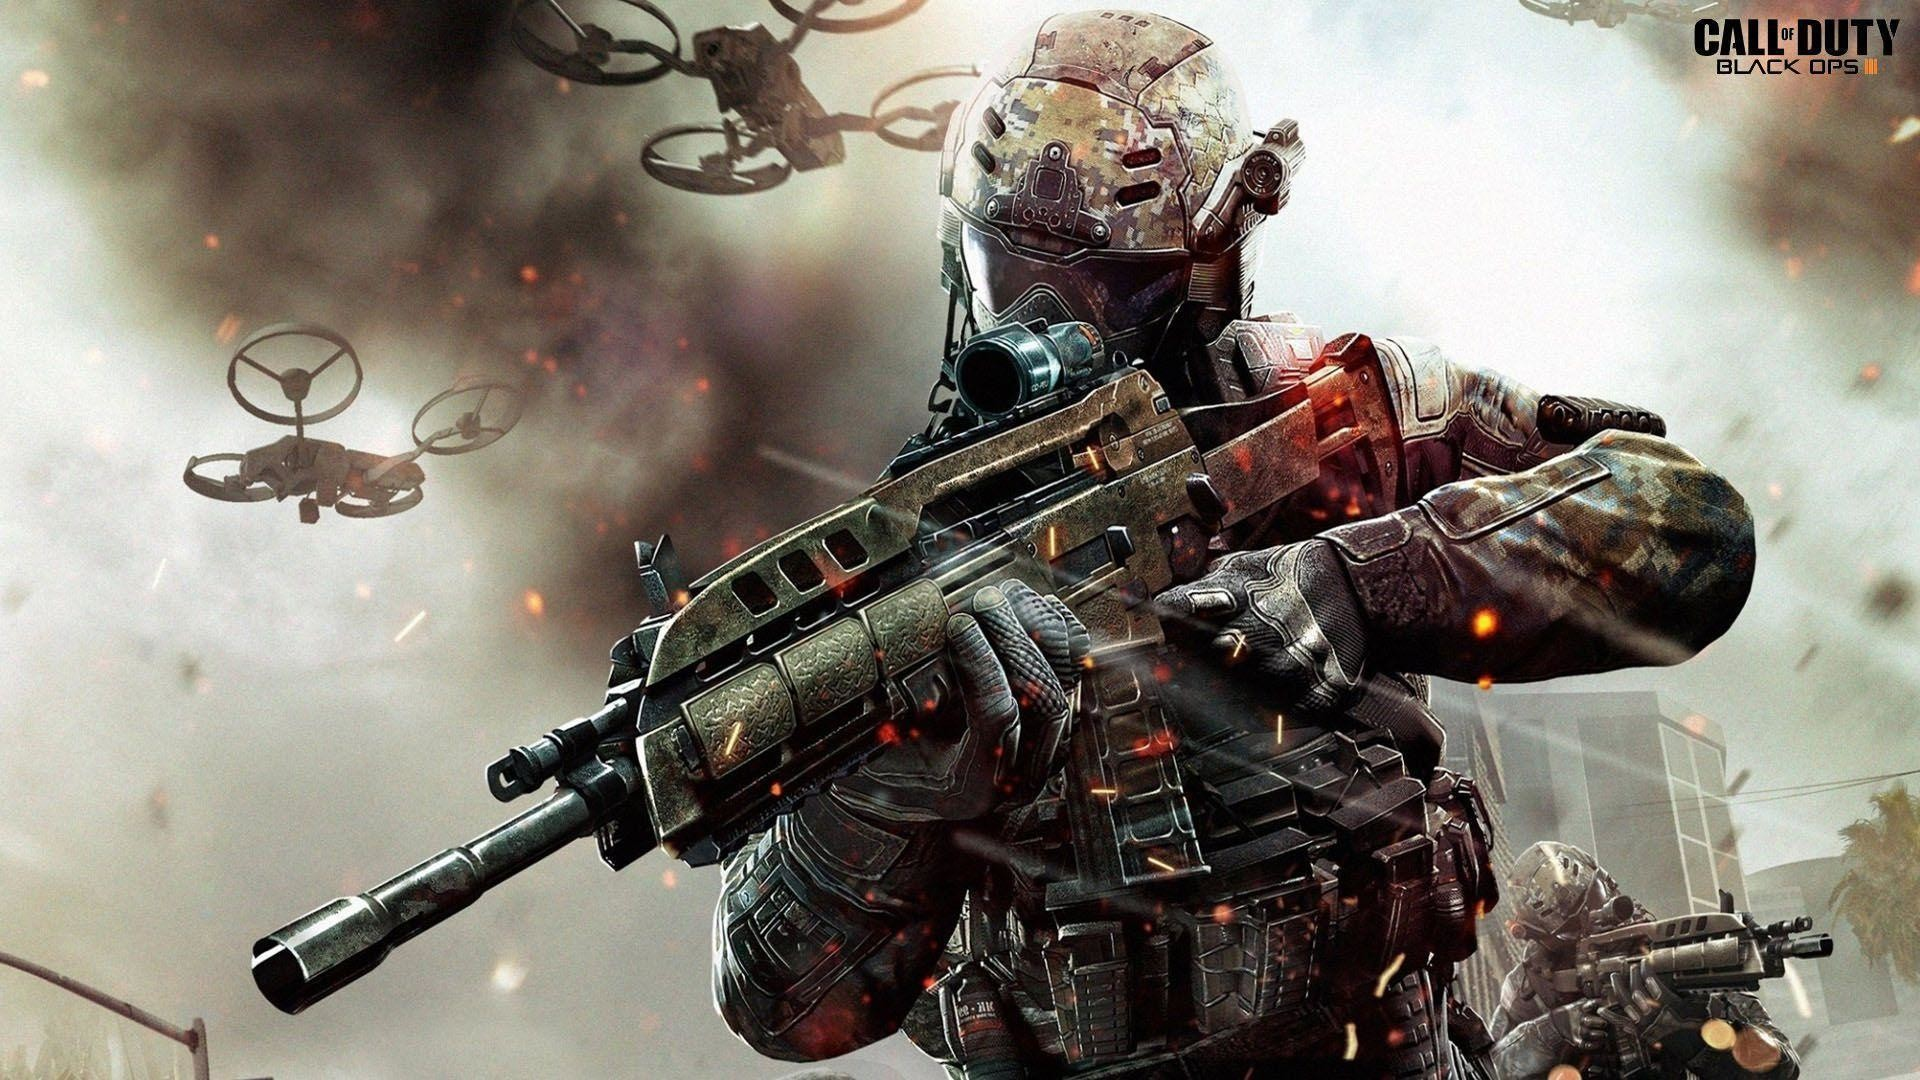 Call Of Duty Live Wallpaper For Pc Best Wallpaper Foto In 2019